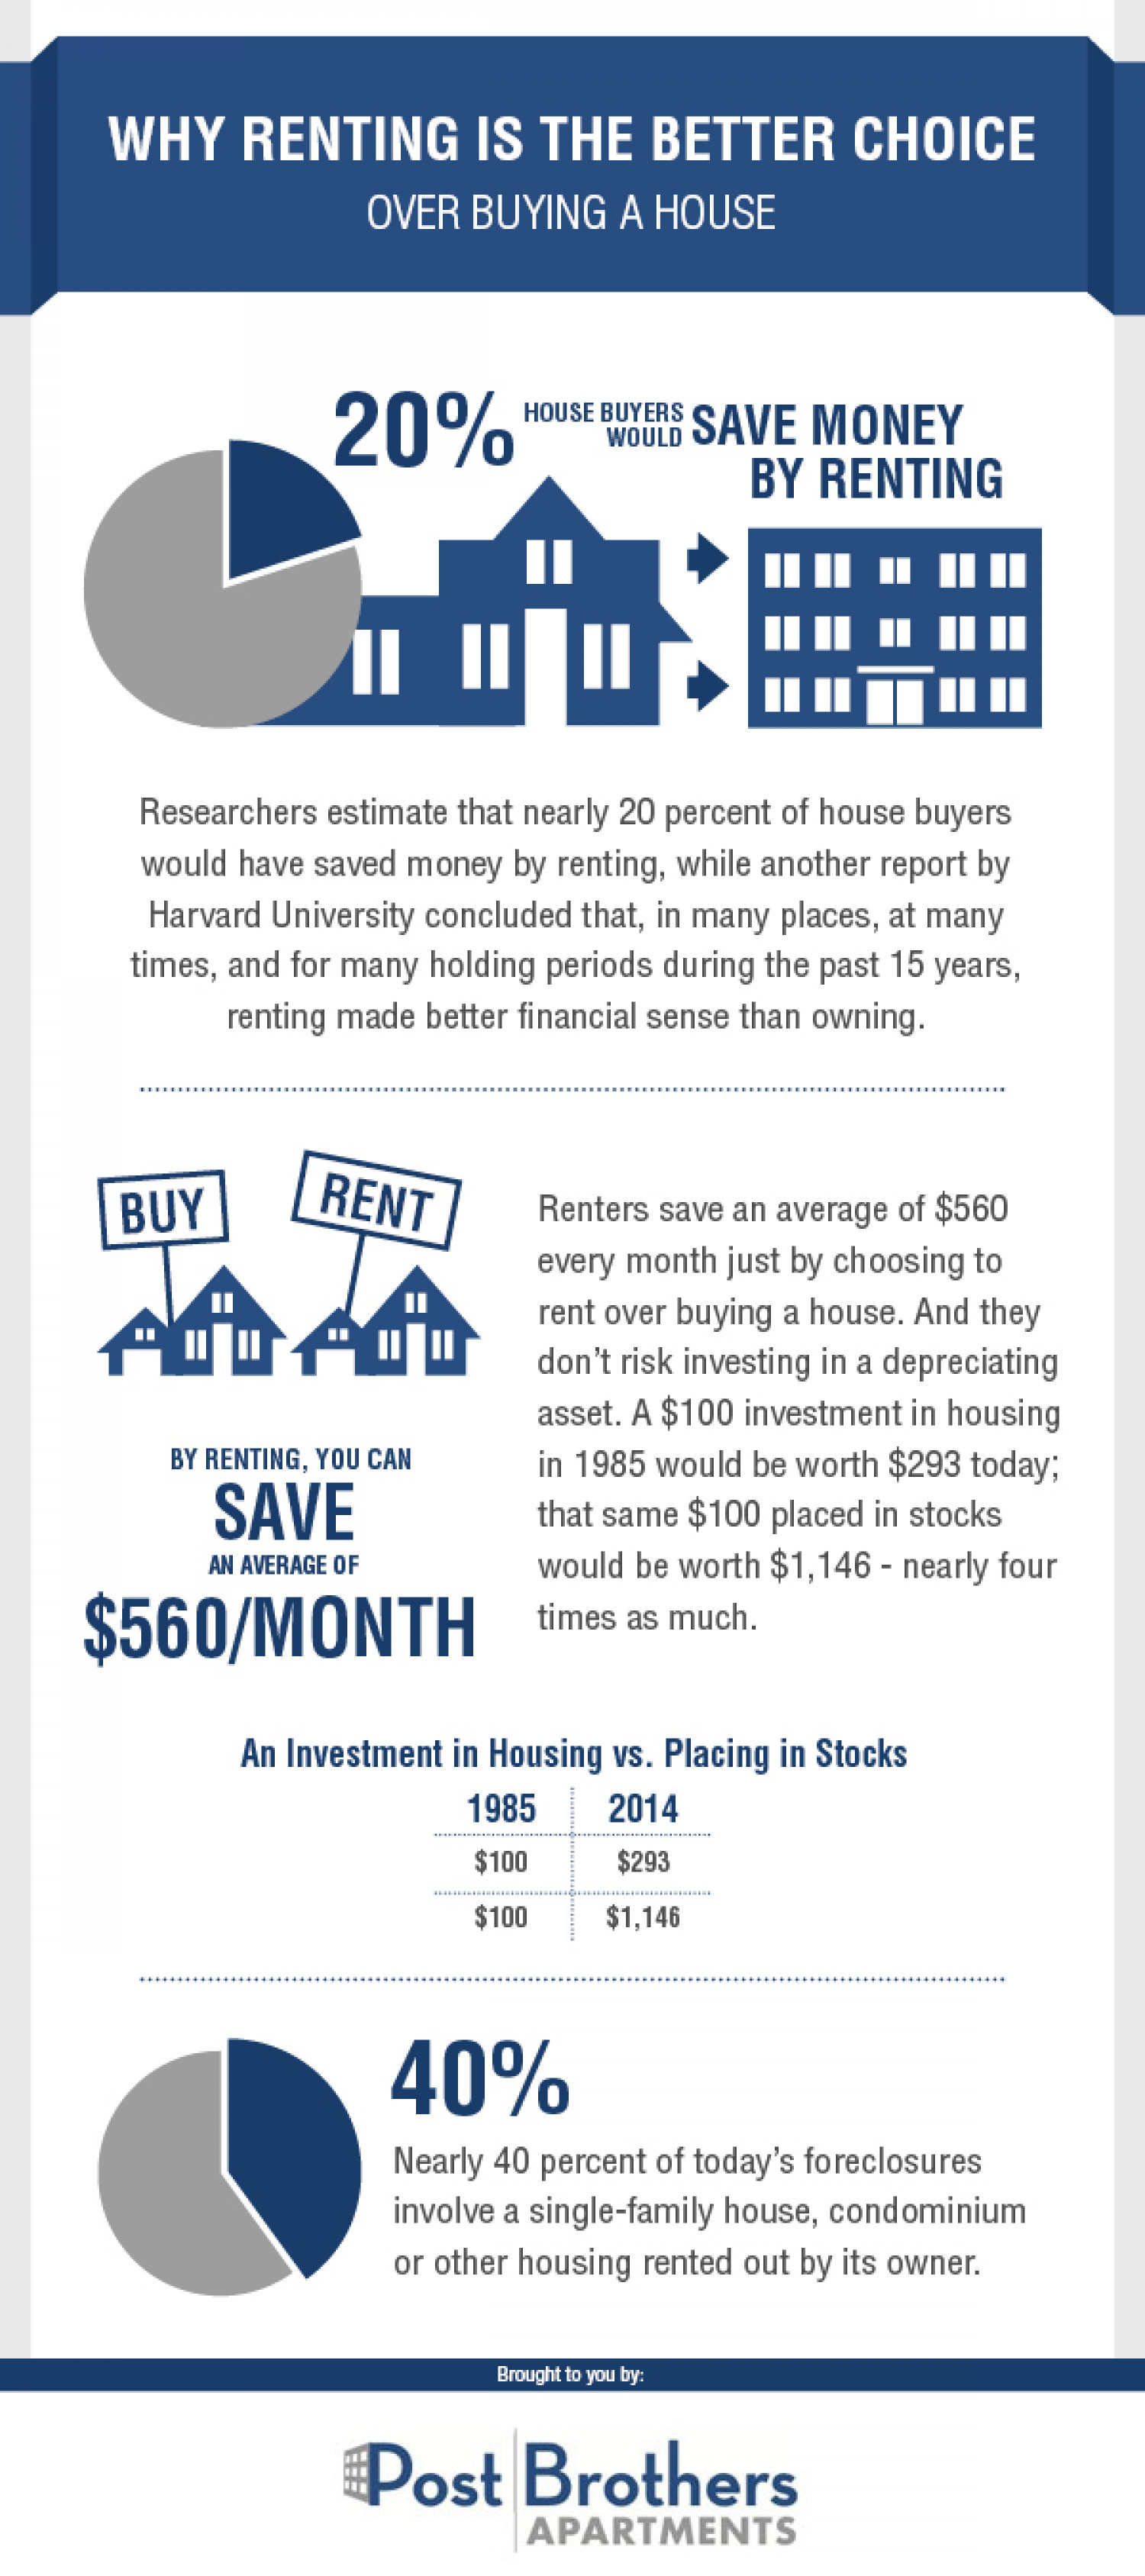 Why Renting is the Better Choice Over Buying a House Infographic